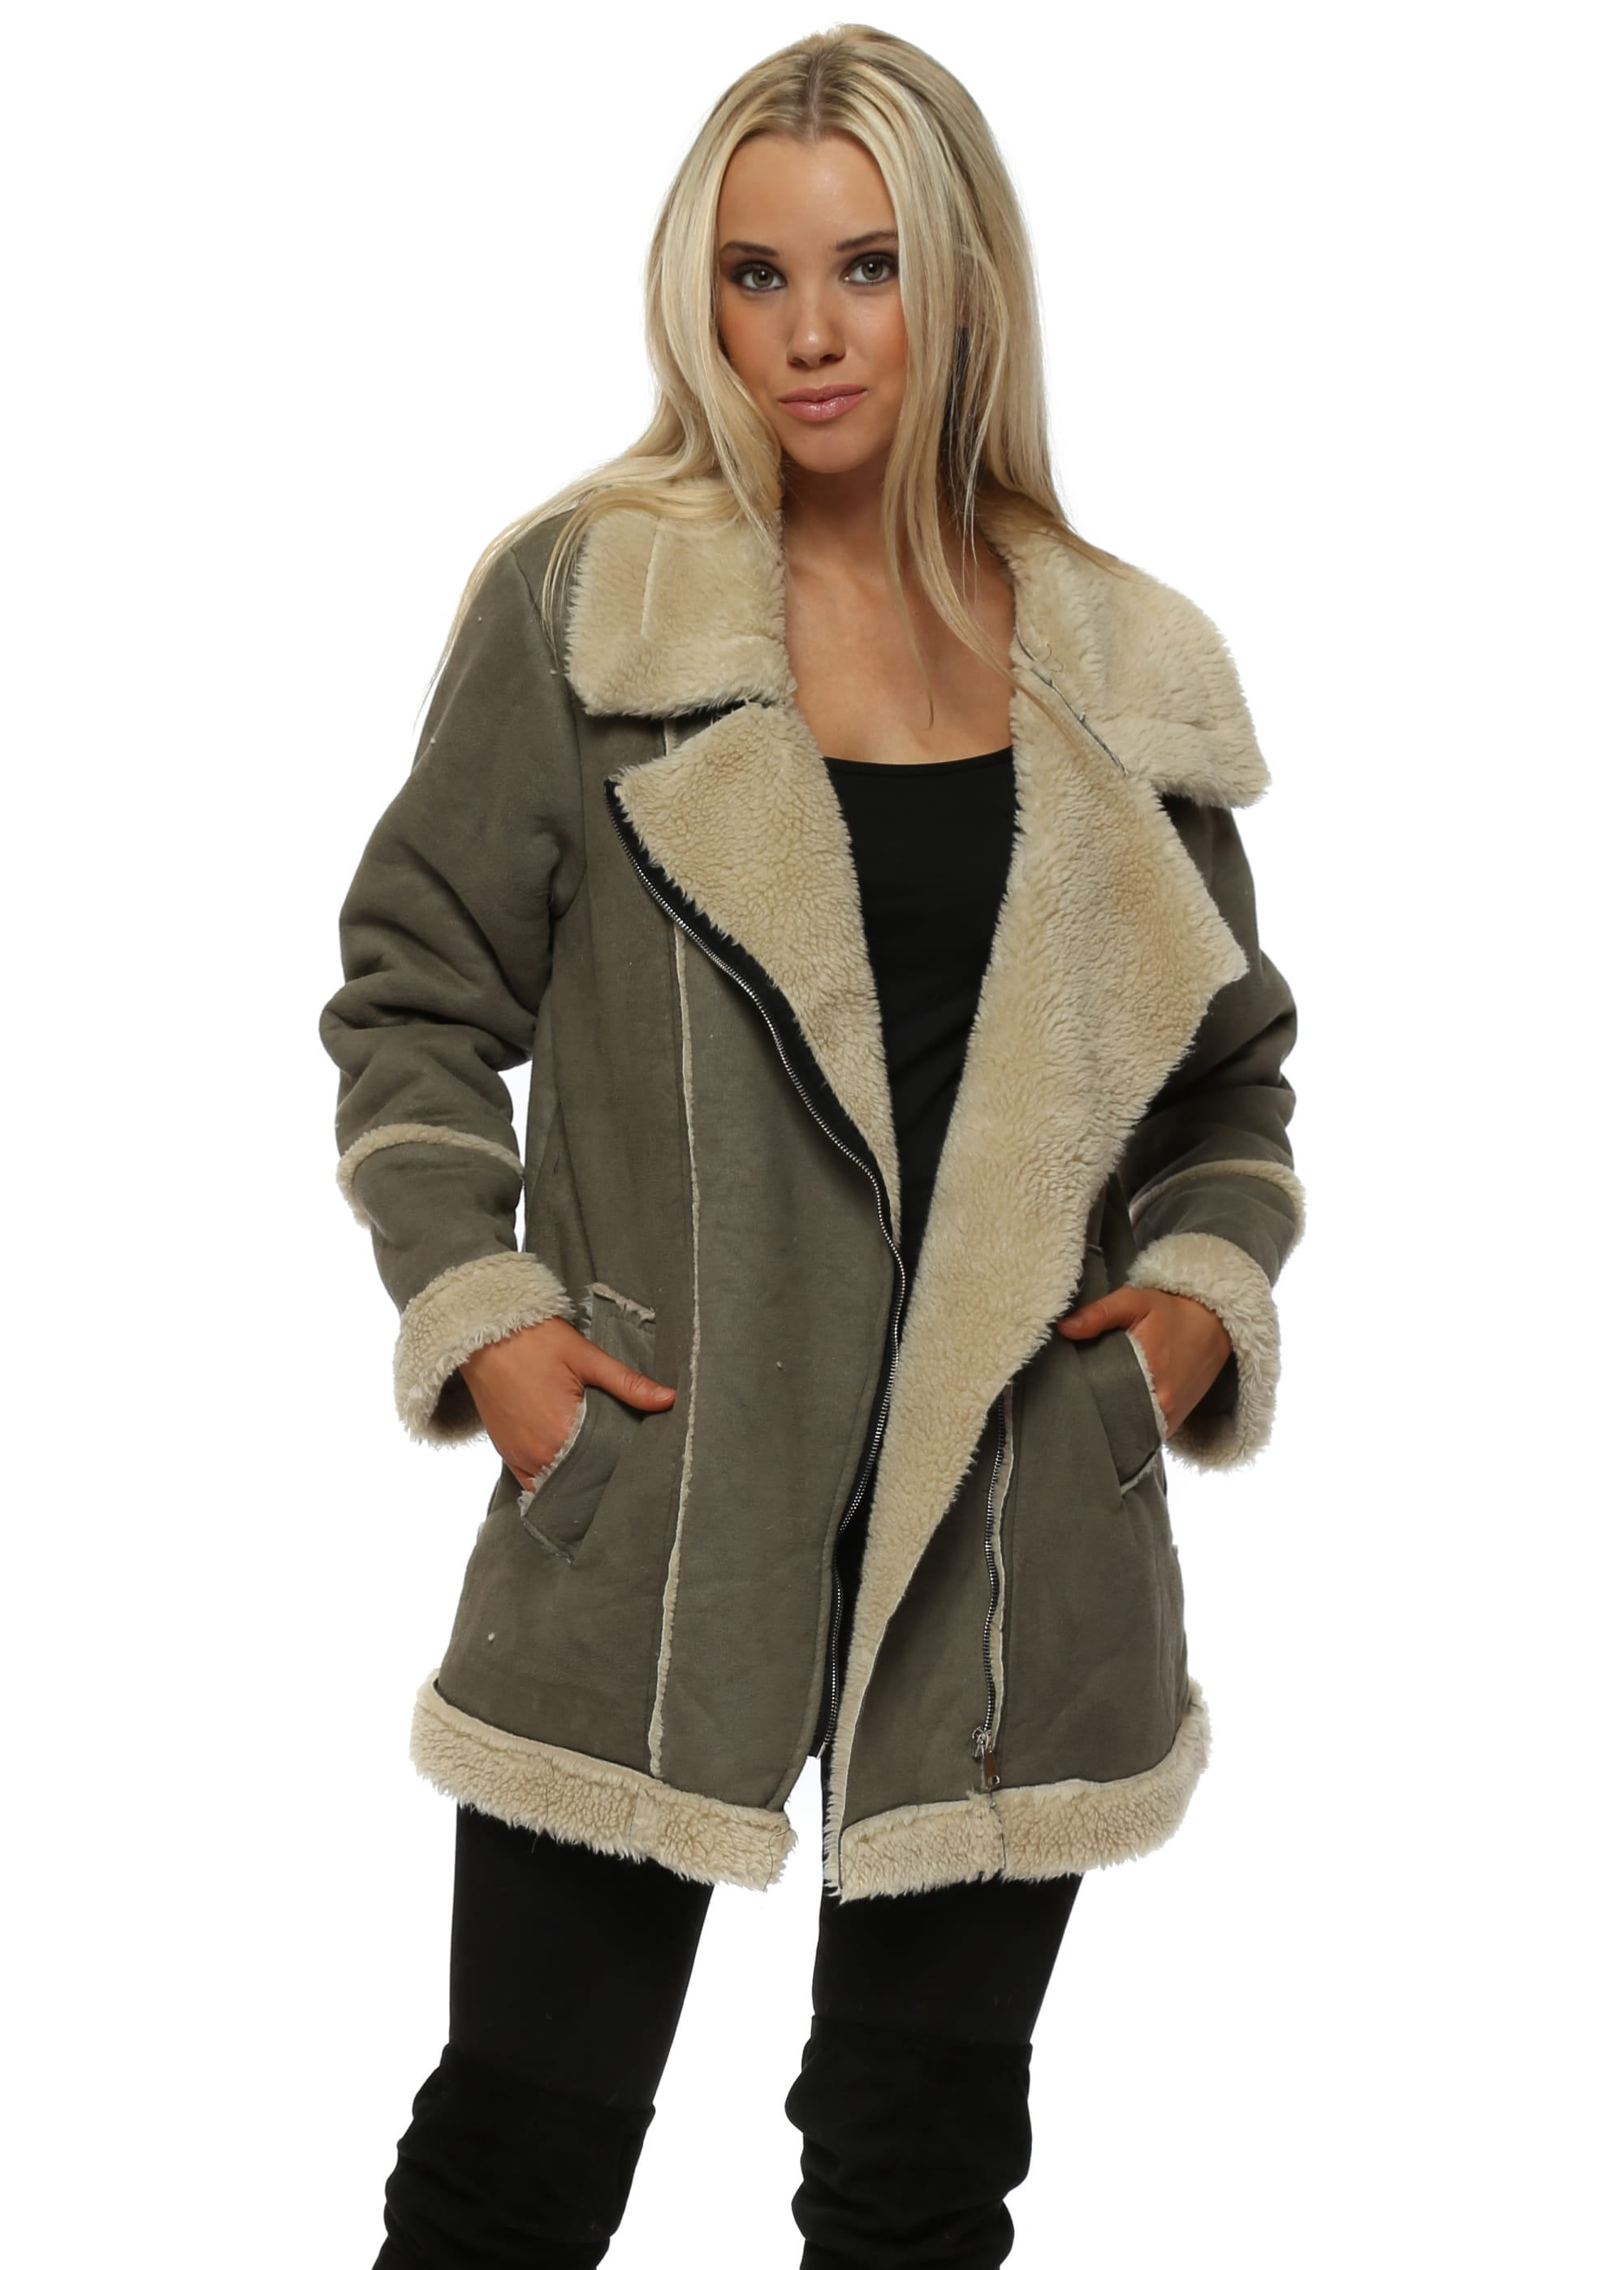 a541e3c49dfd2 Khaki Green Aviatoer Jacket - Faux Fur Shearling